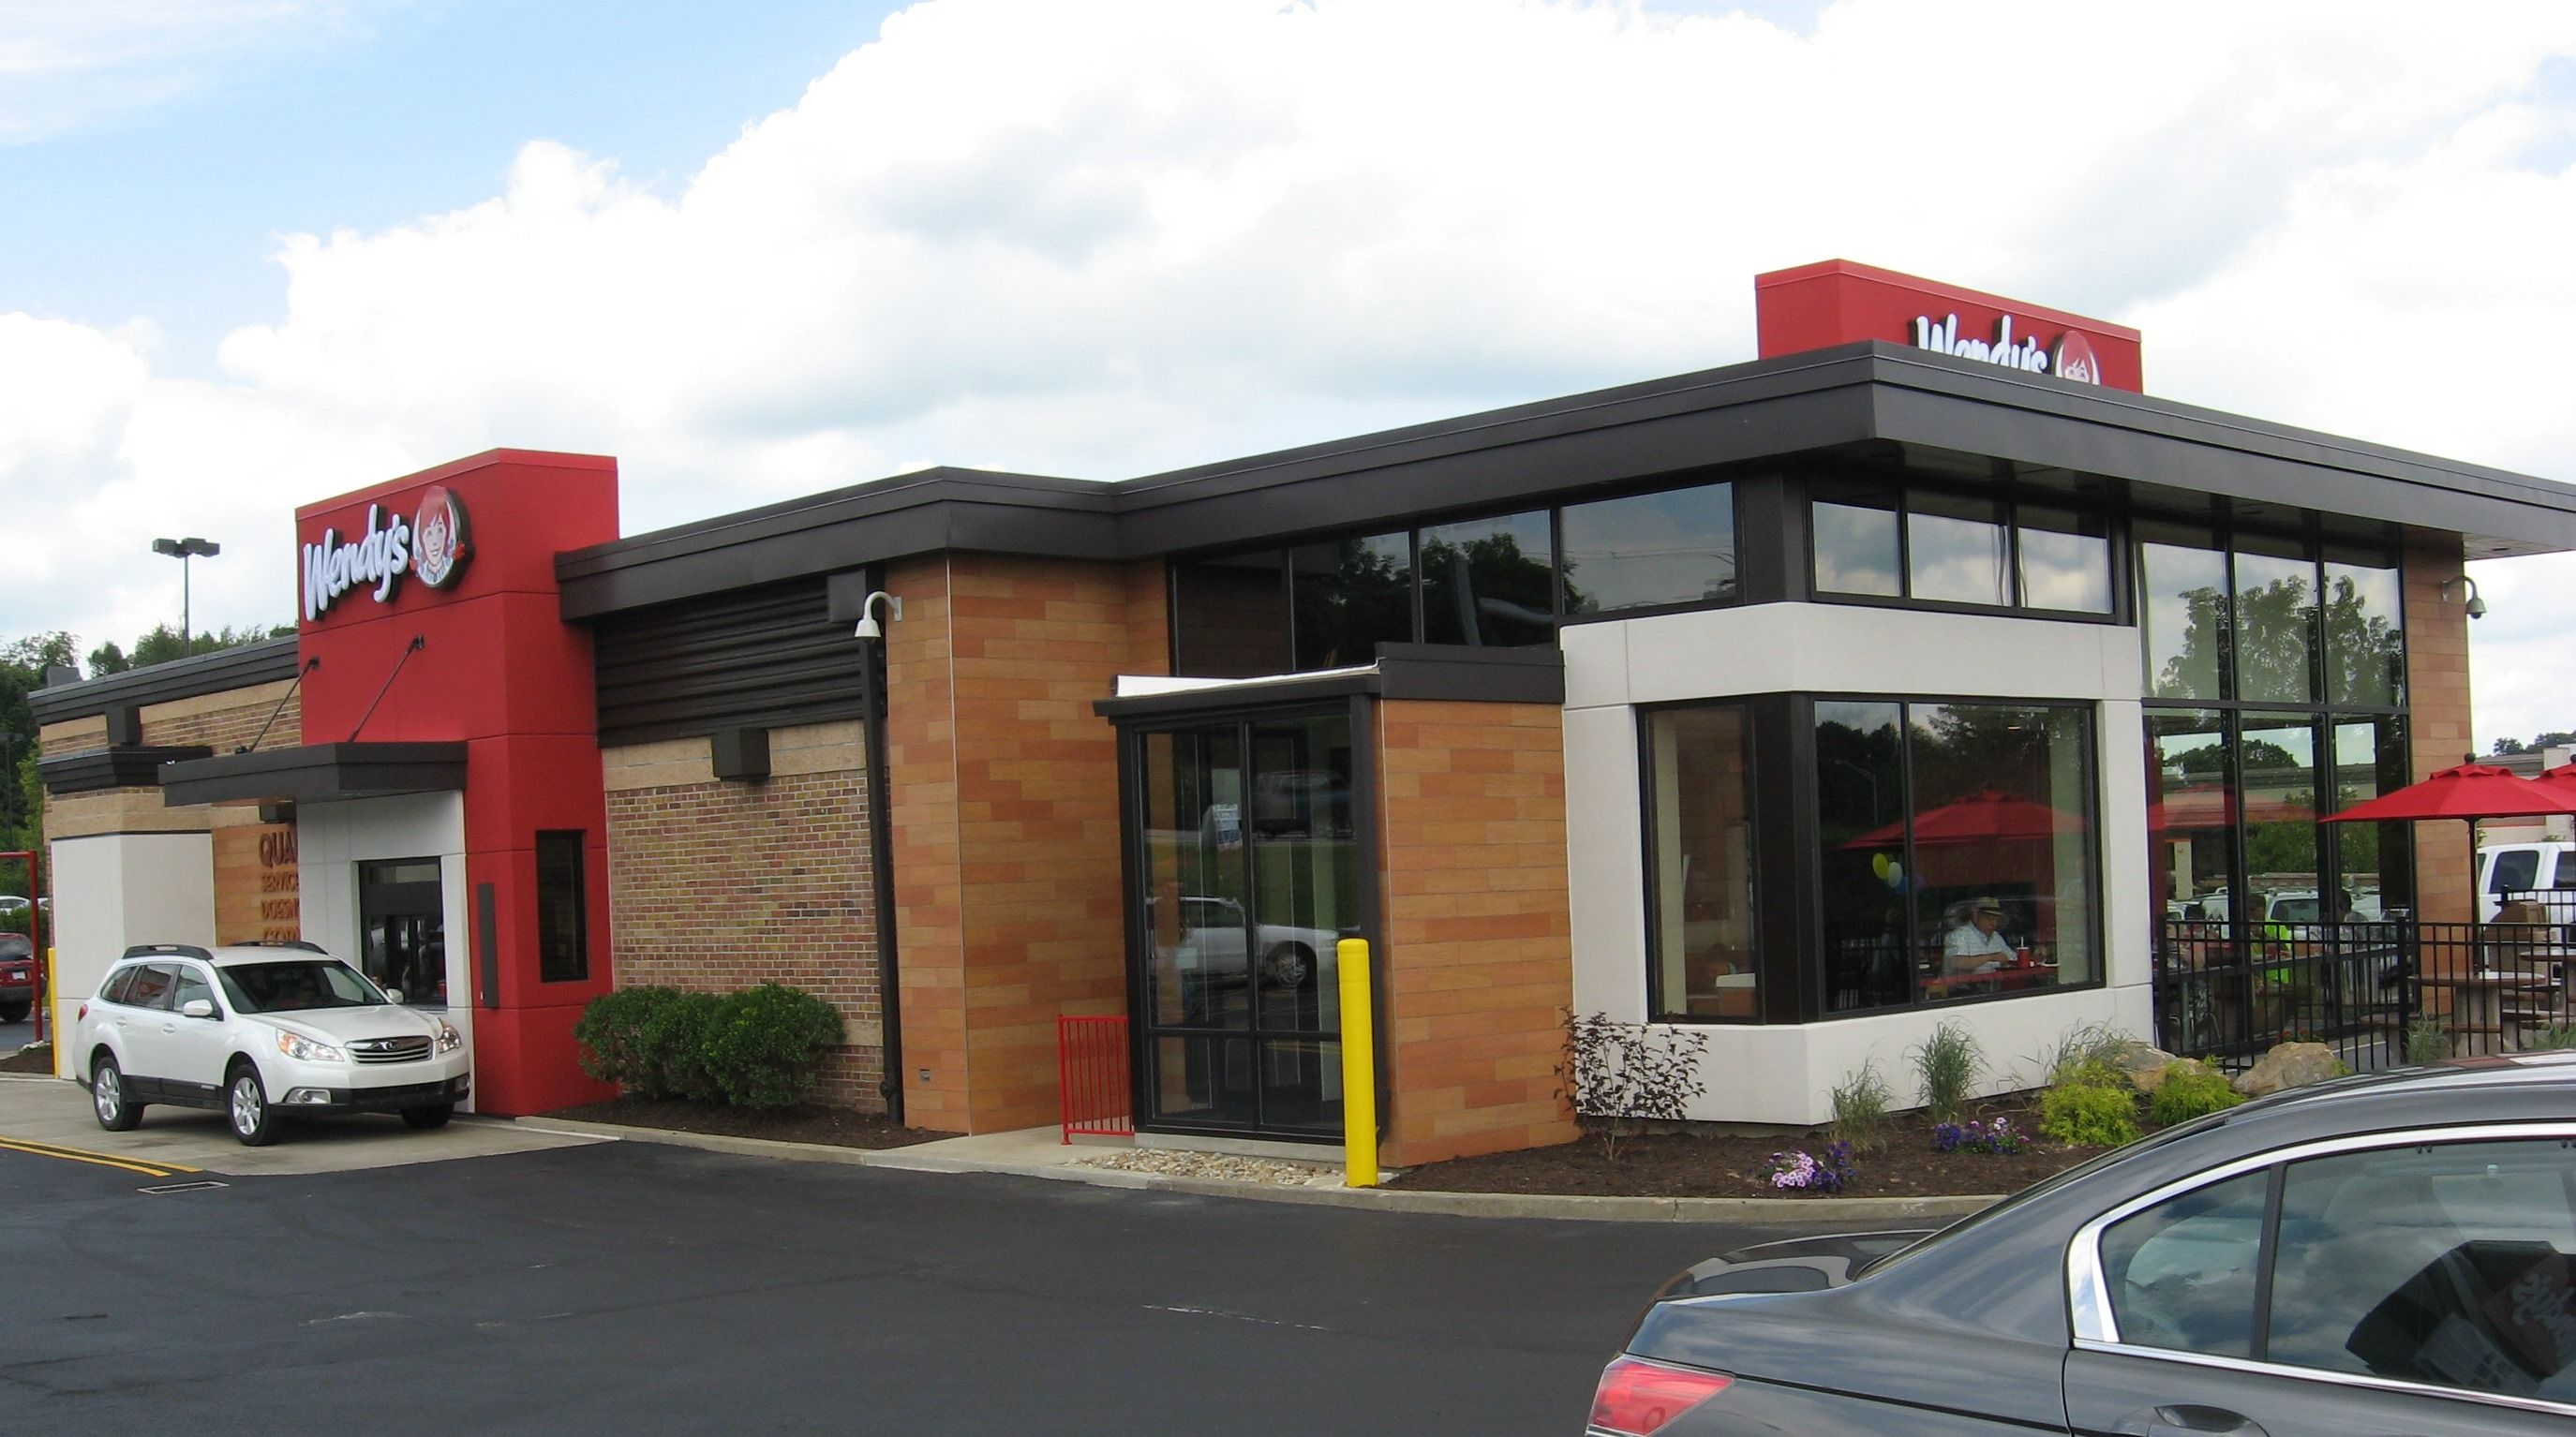 new fast food restaurant exterior google search - Fast Food Store Design